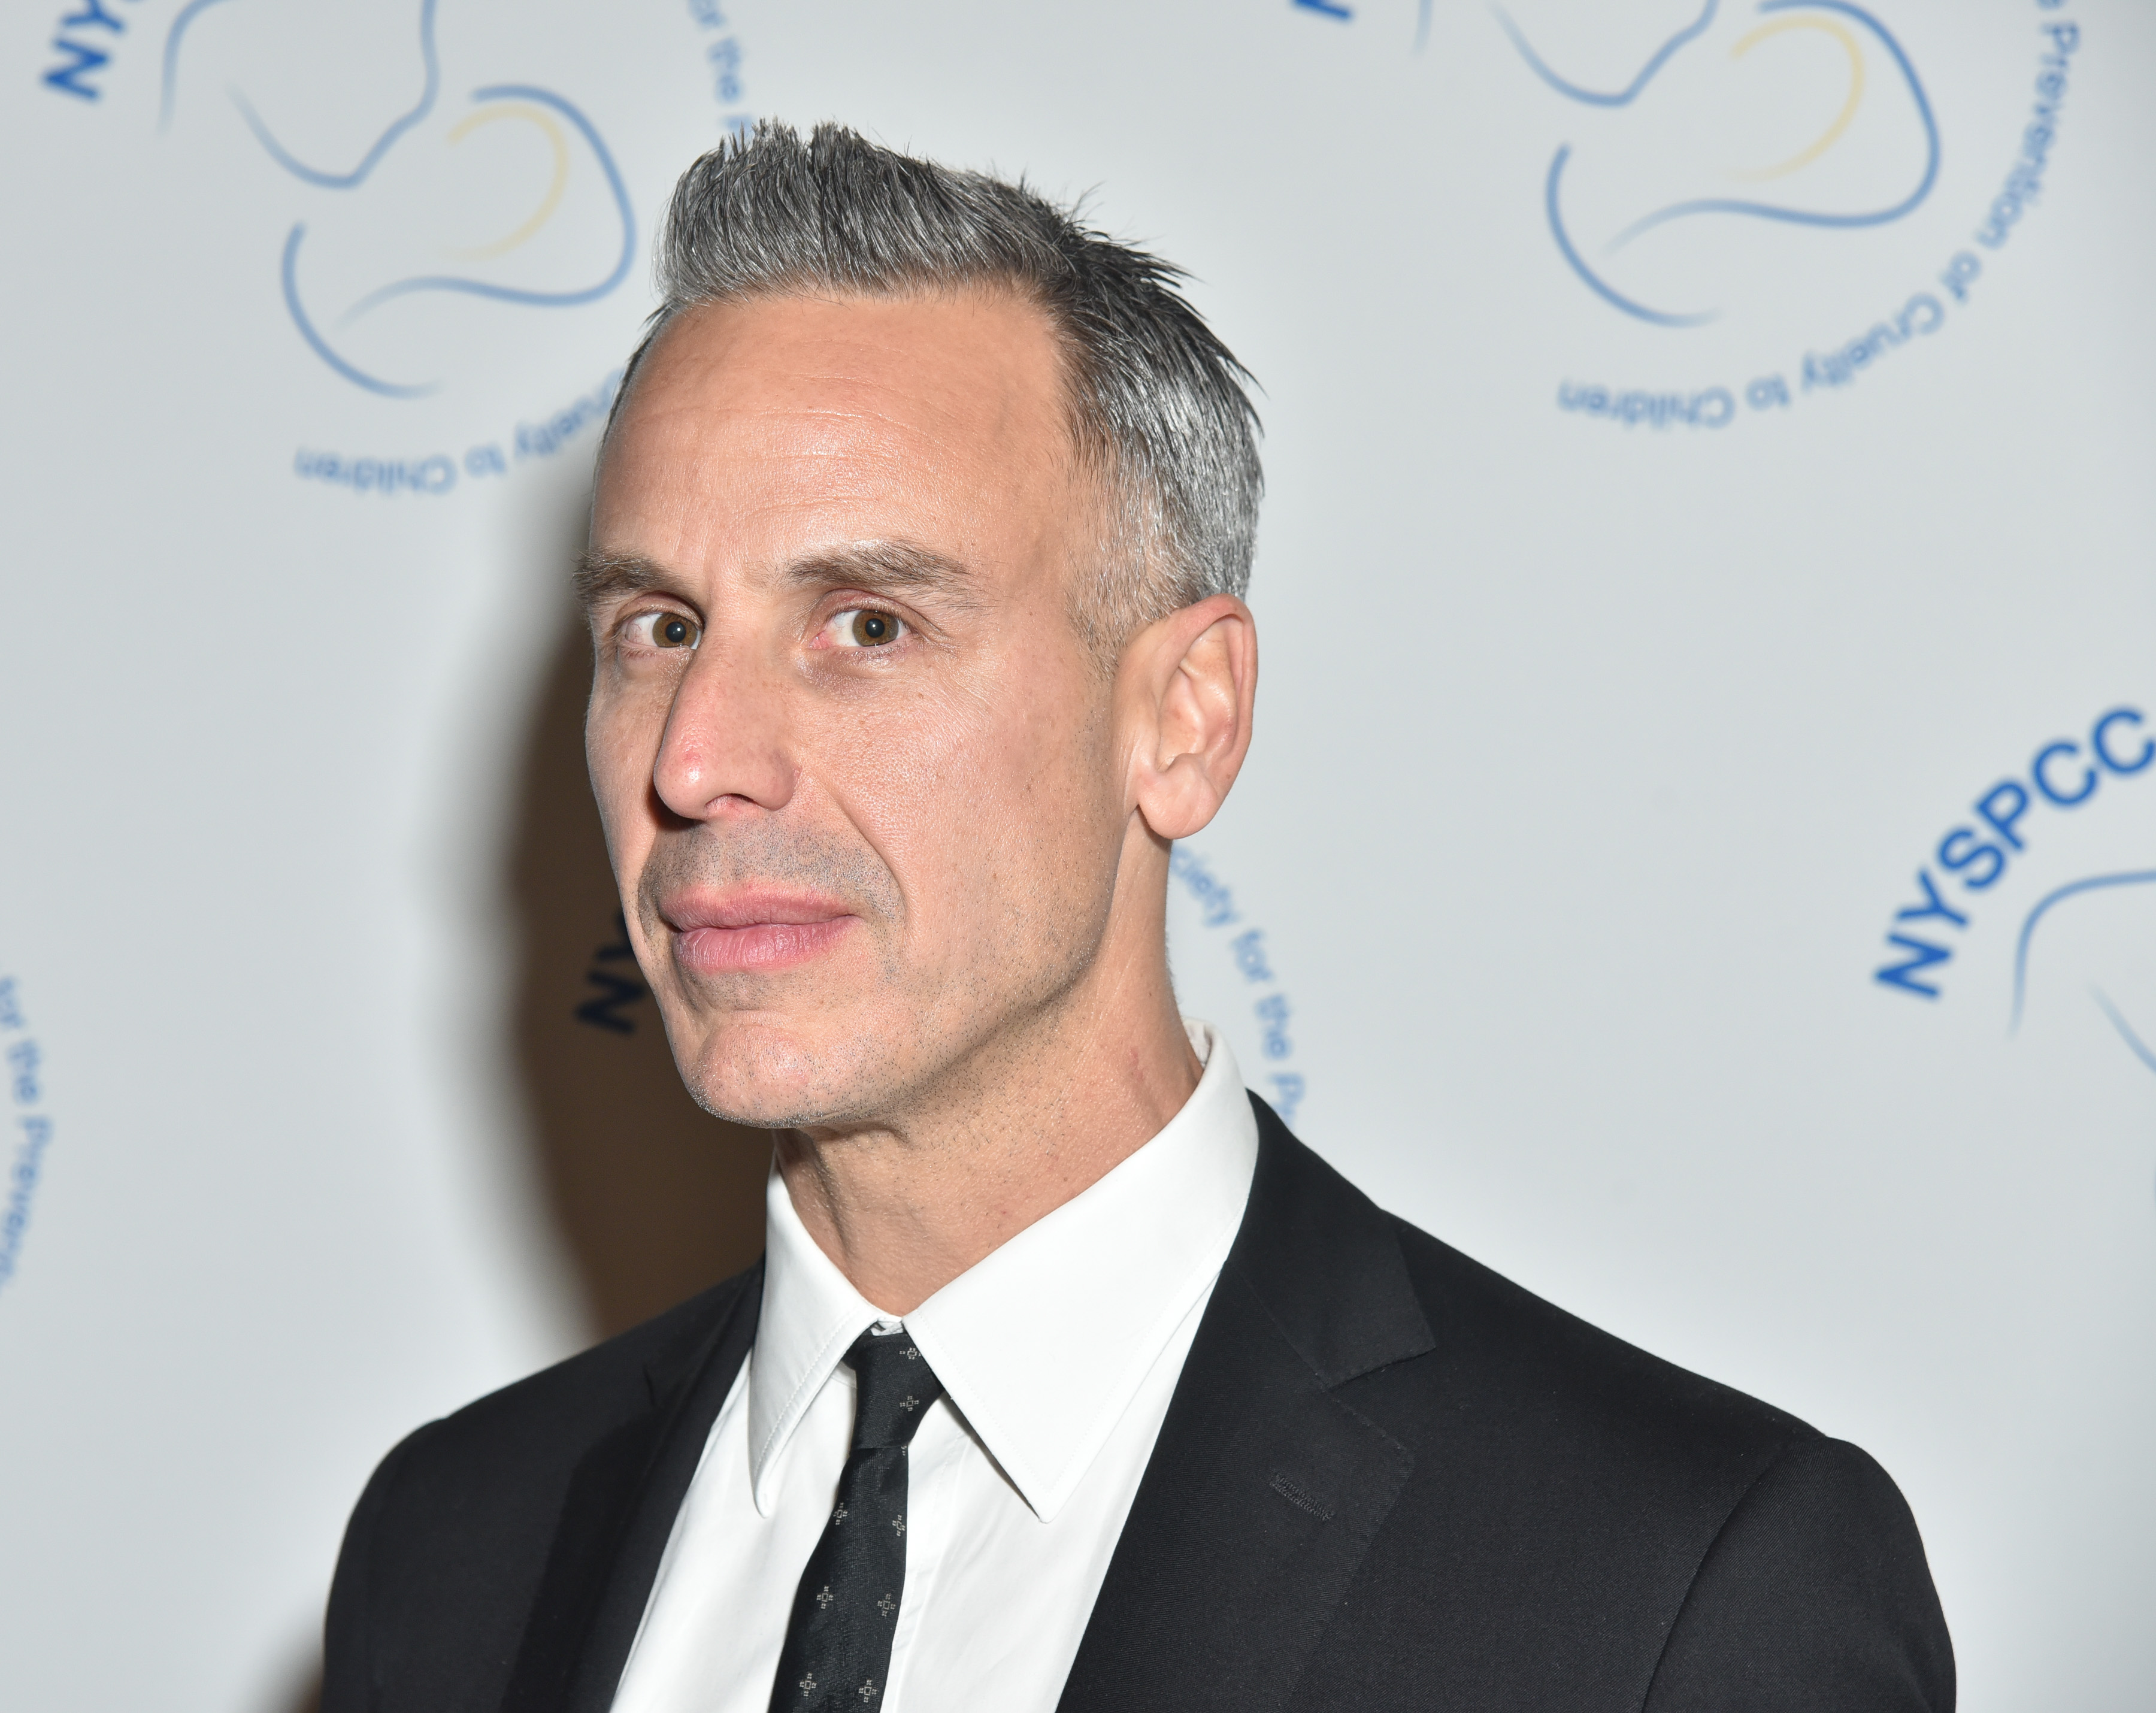 The New York Society for the Prevention of Cruelty to Children (NYSPCC) - Food & Wine Gala